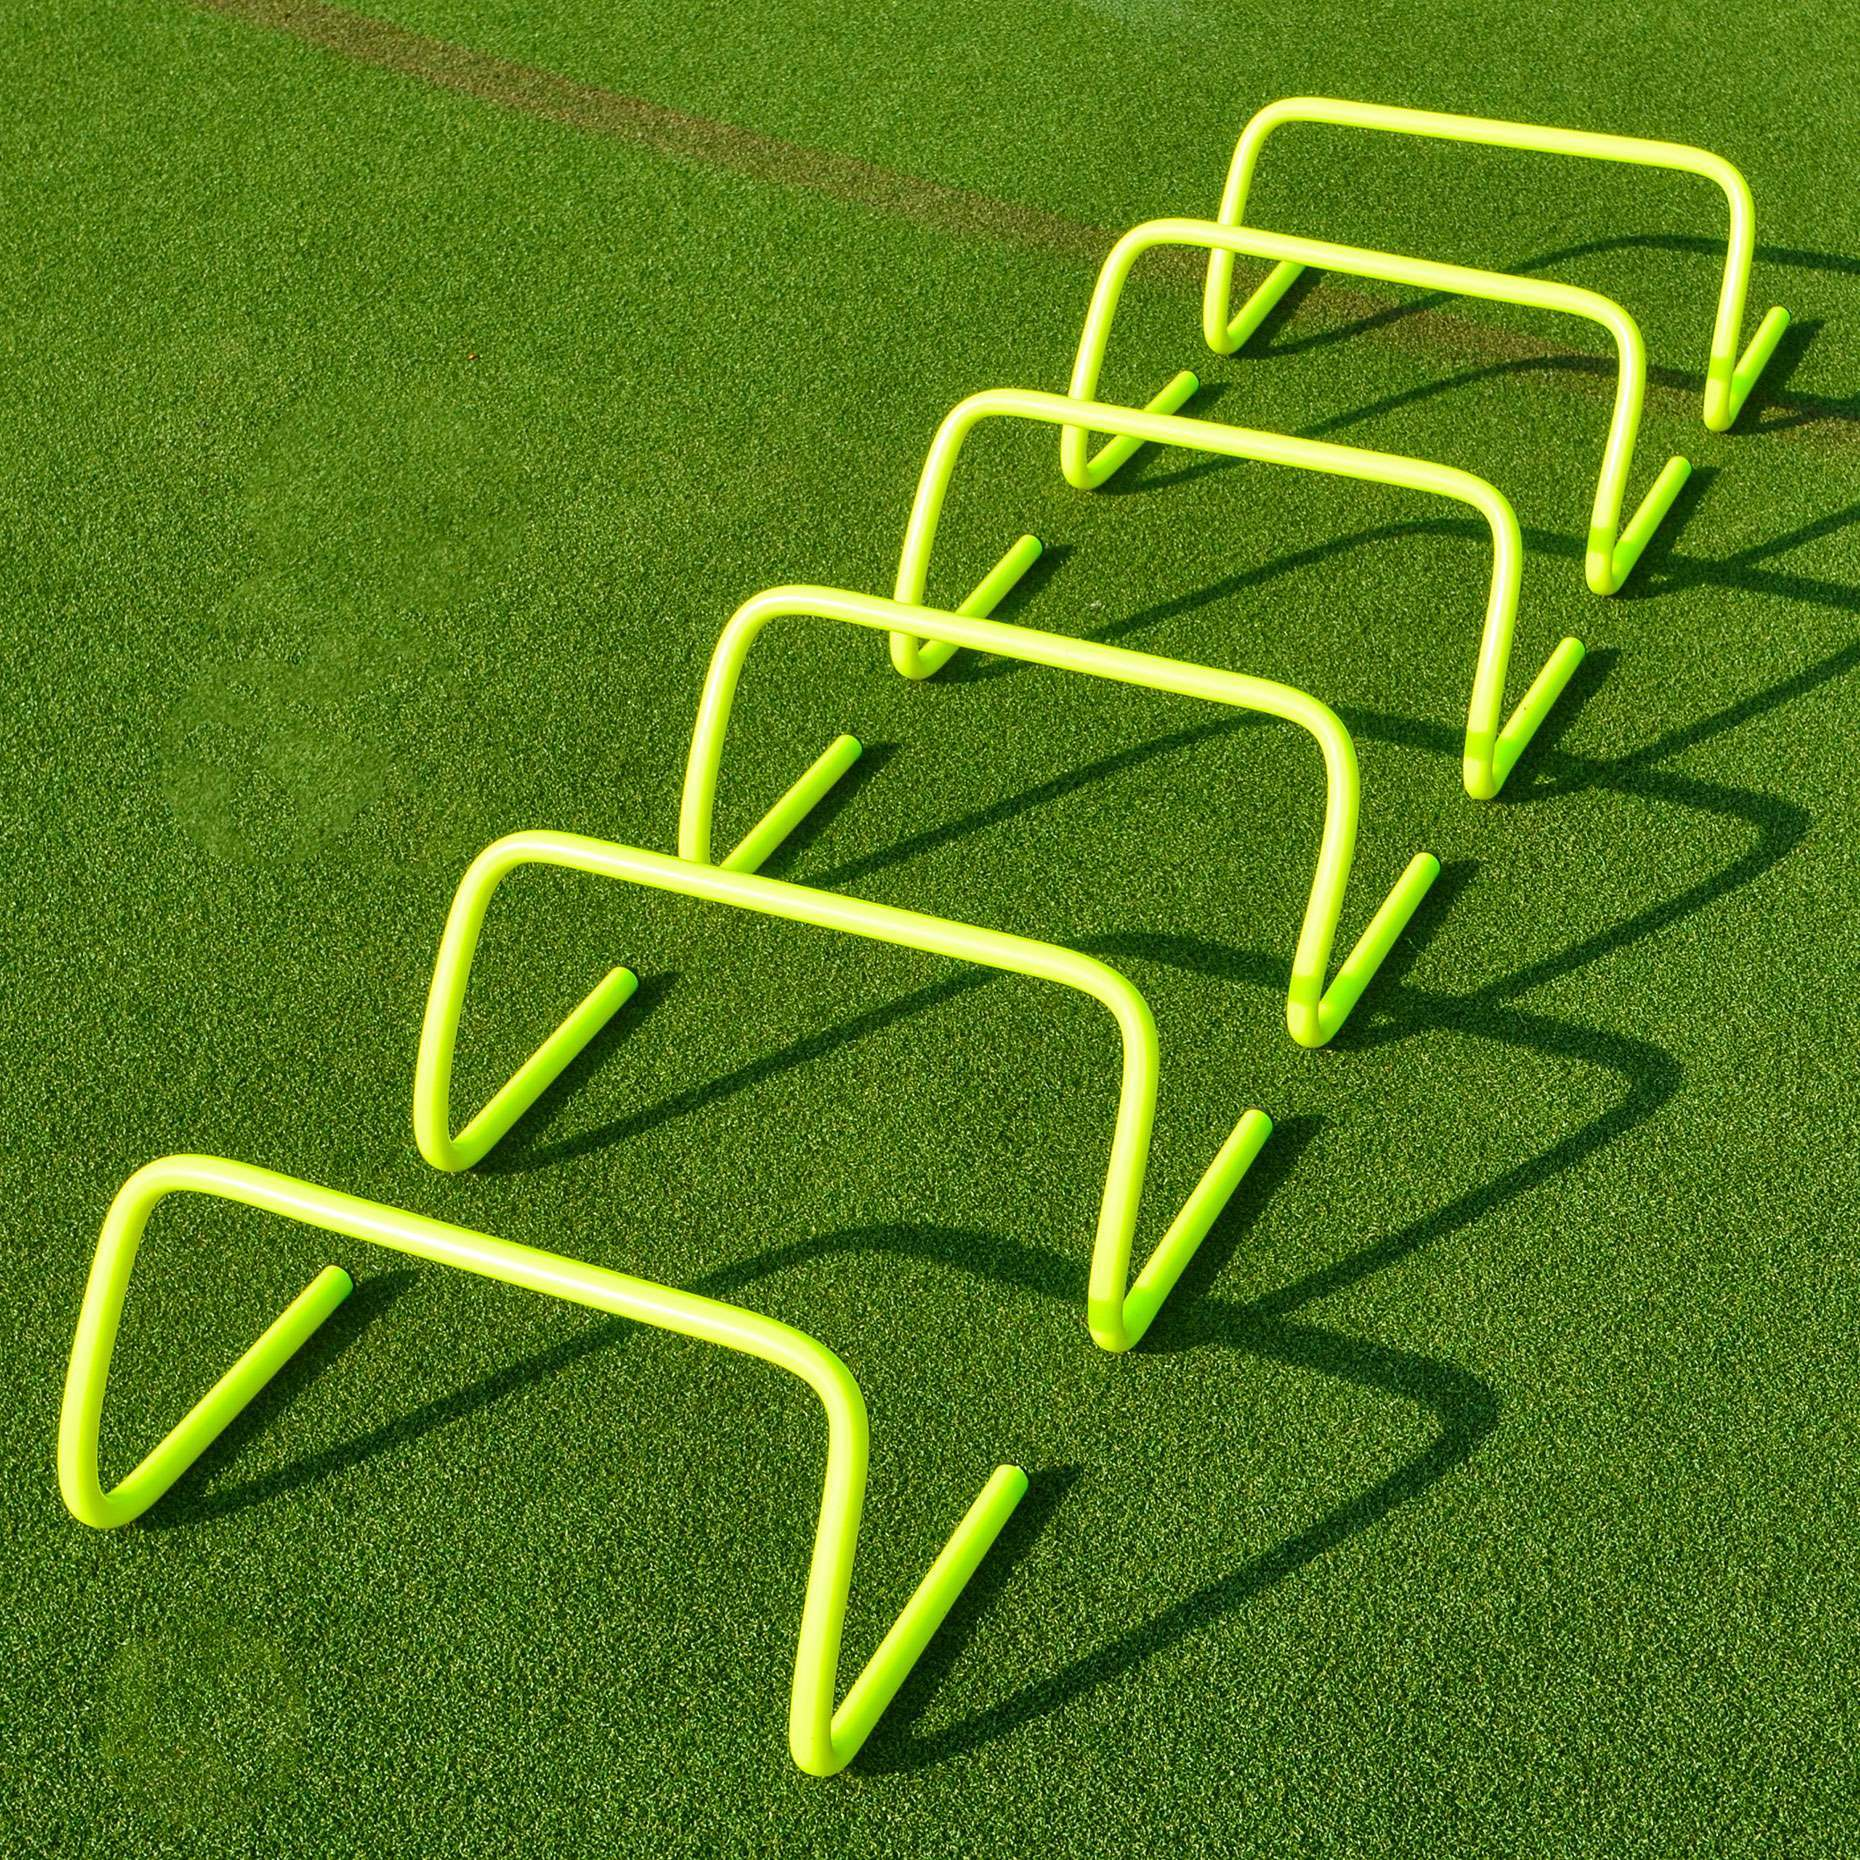 9 Inch FORZA Speed Training Hurdles [6 Pack]